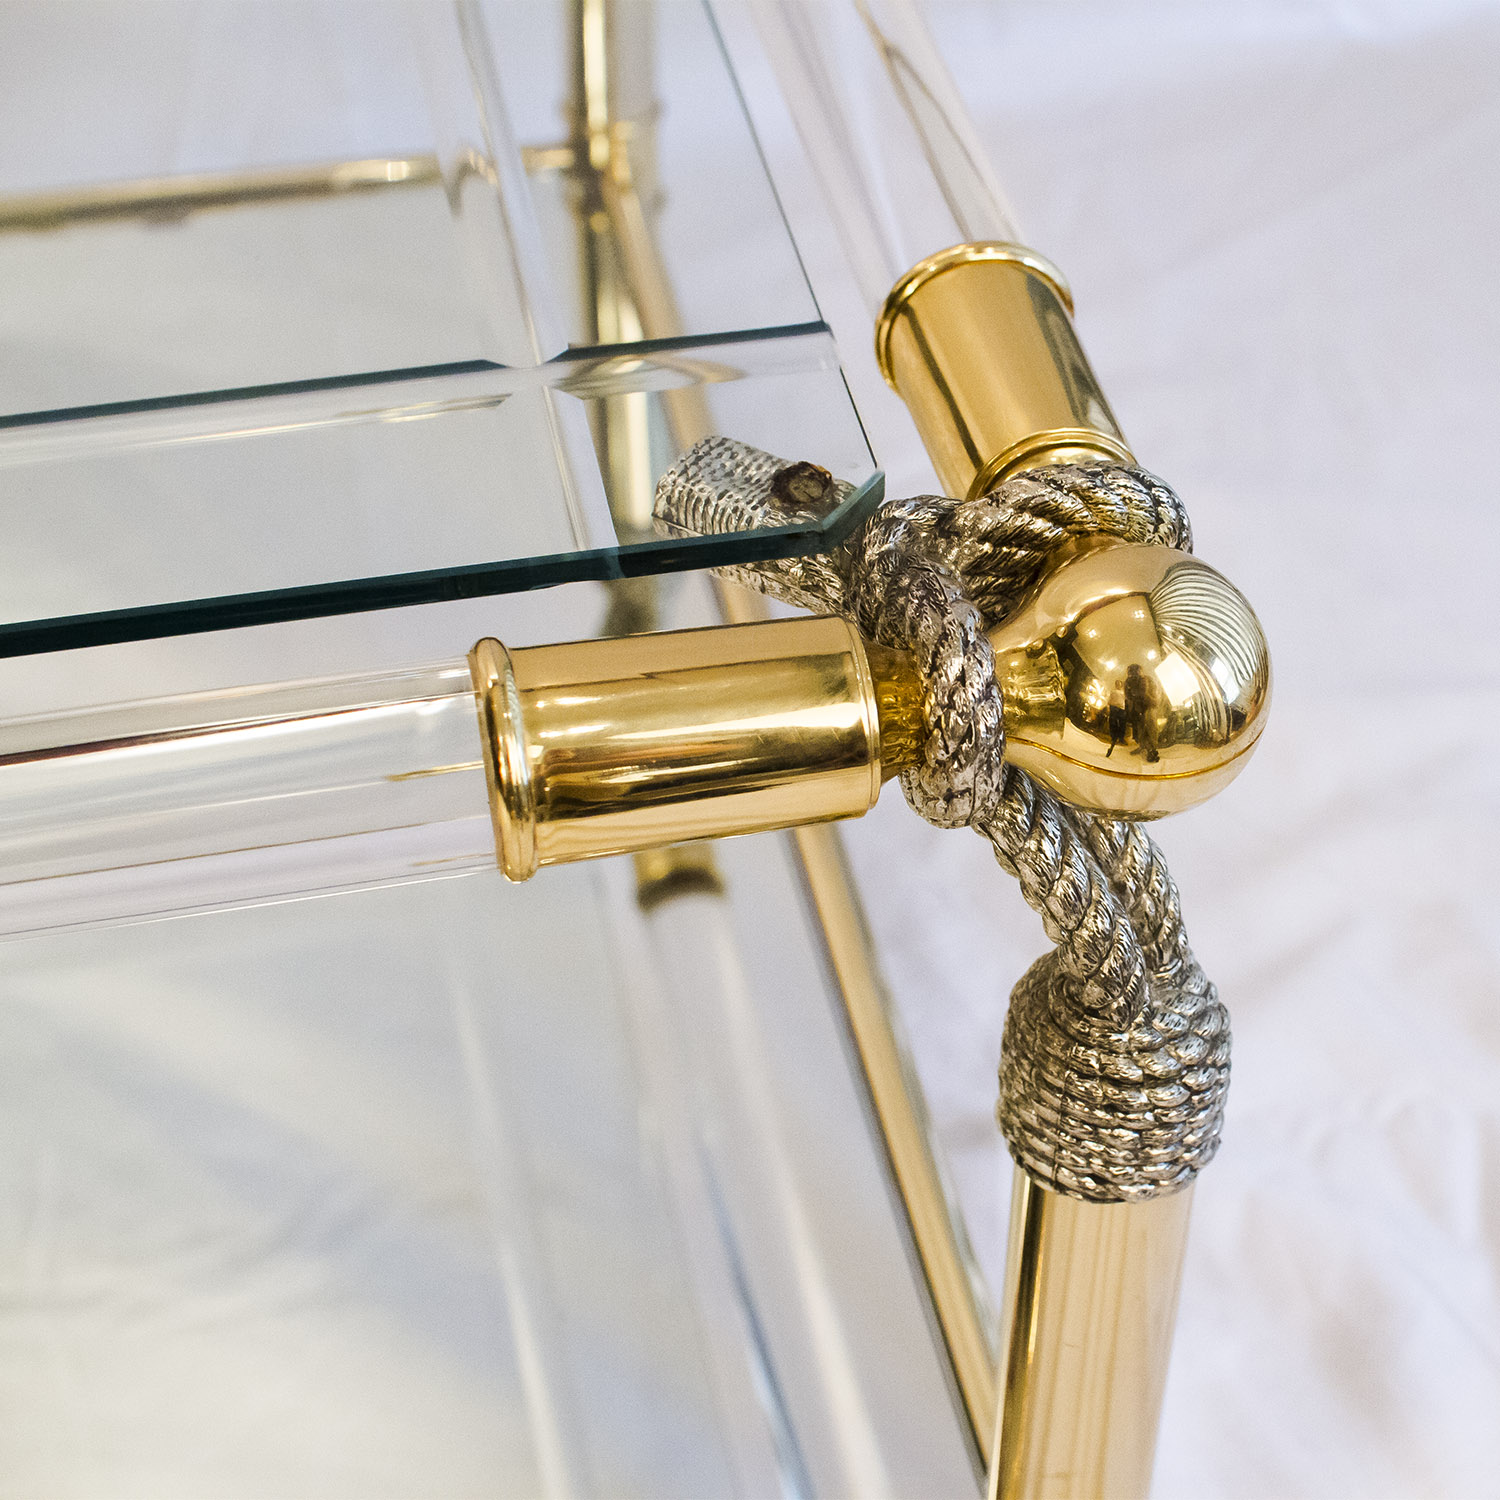 Brass & Lucite table with Rope Details